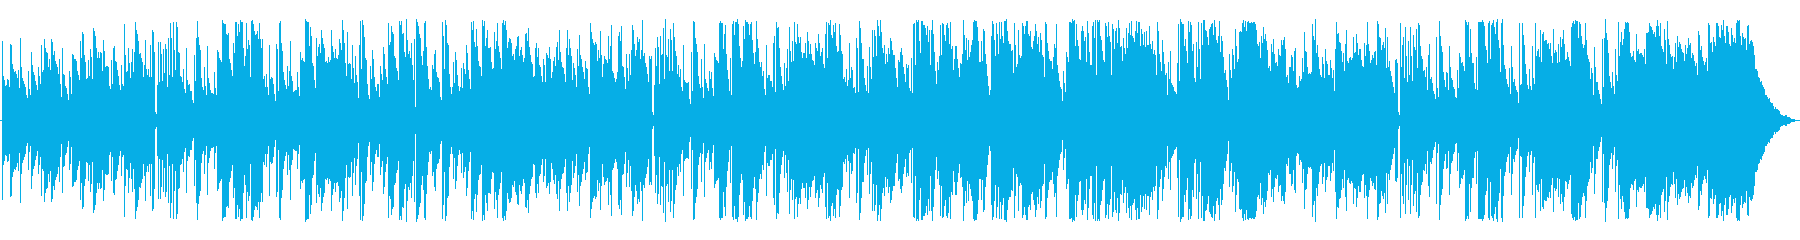 Beads and bangles (sax)'s reproduced waveform